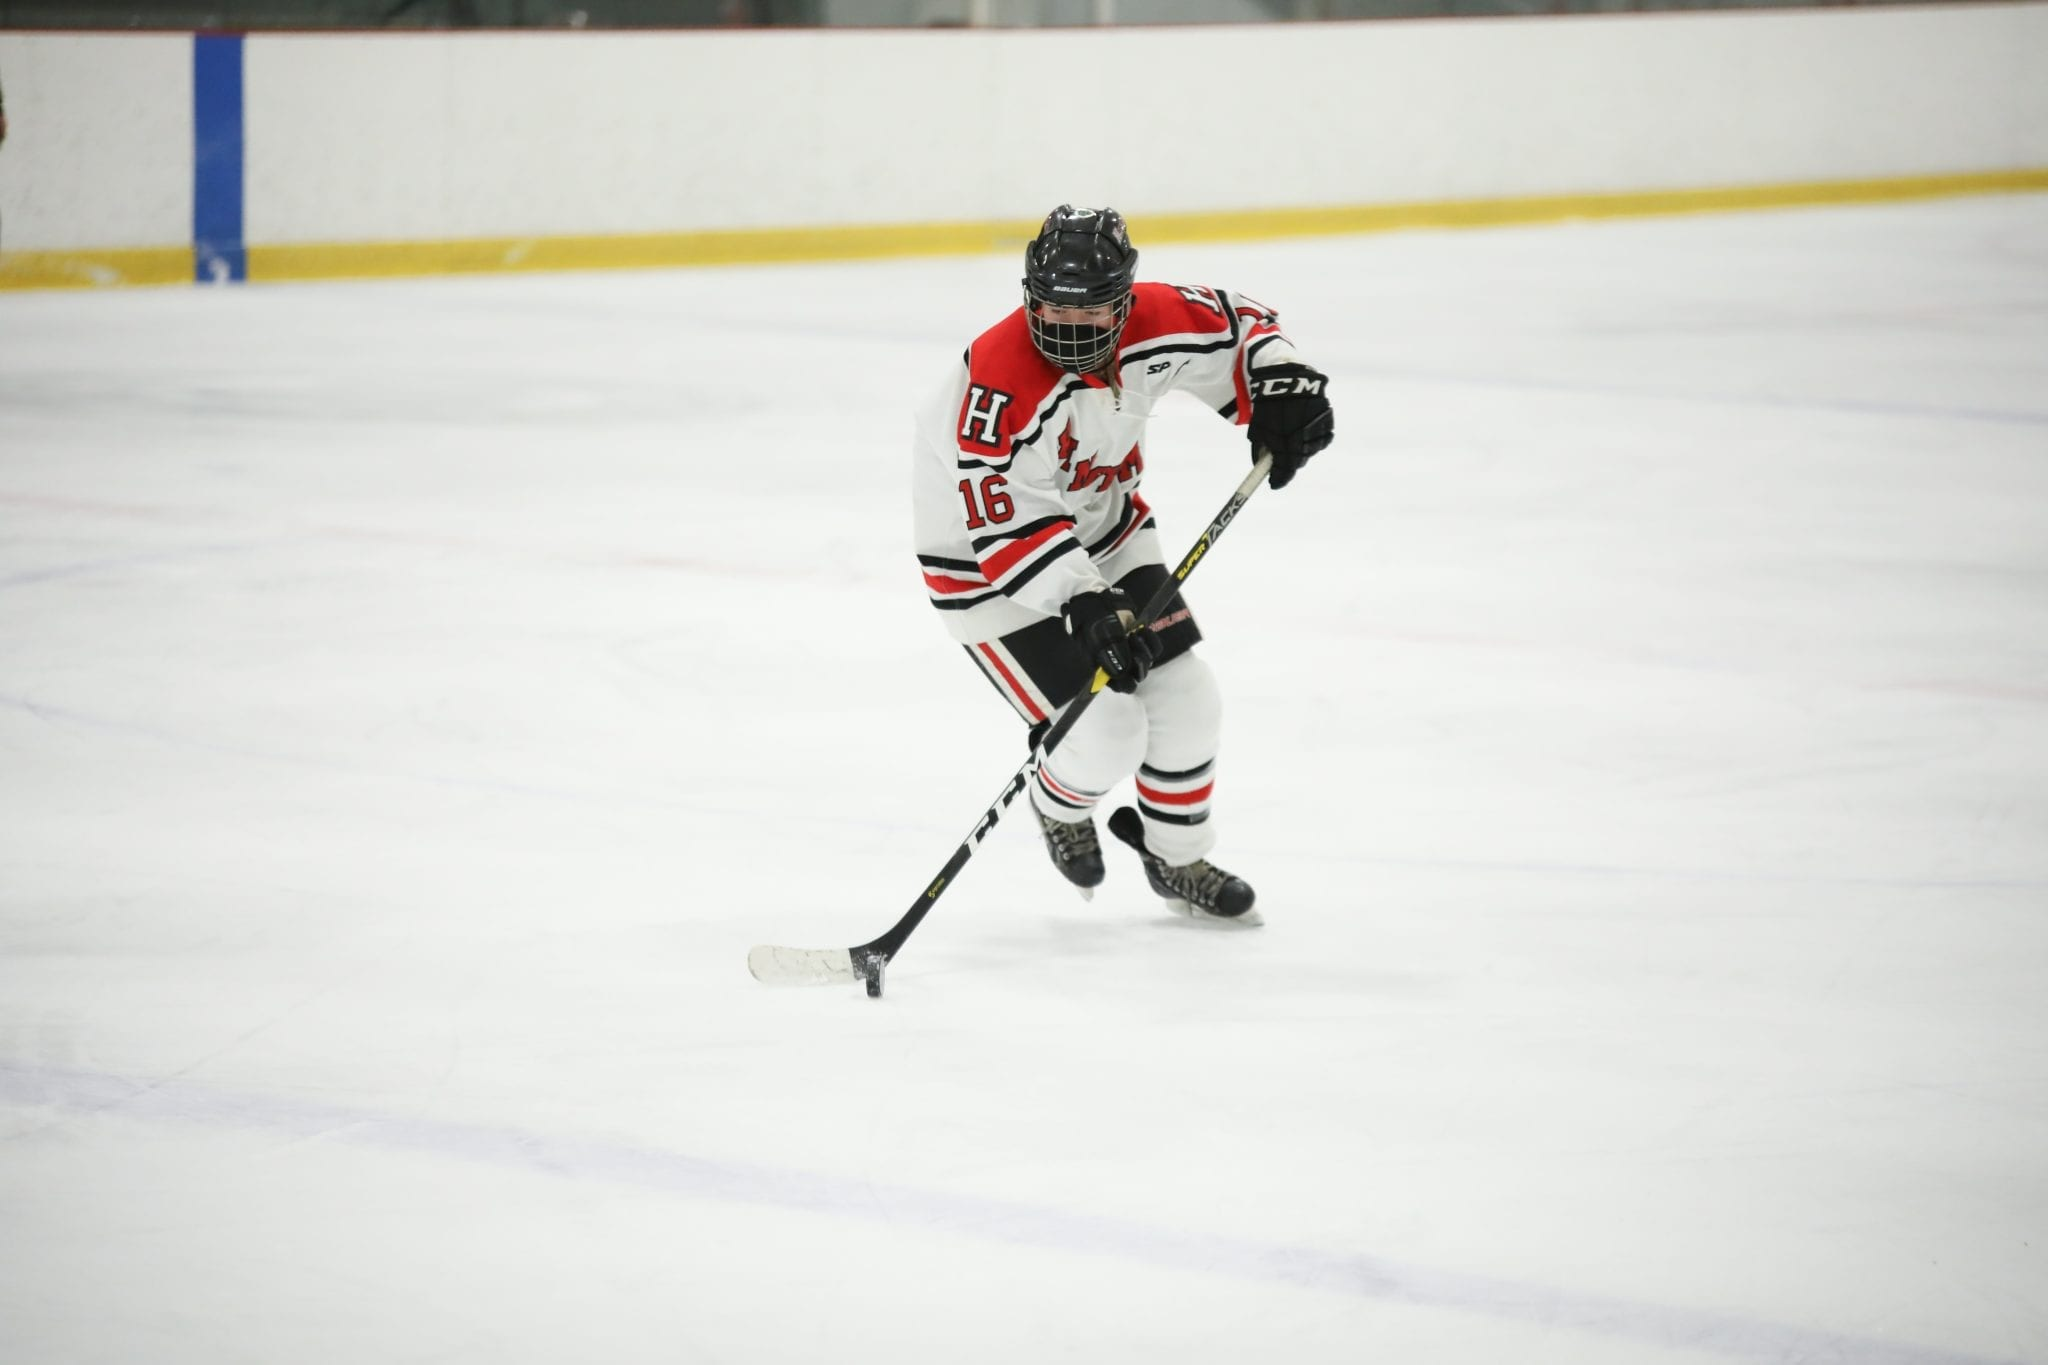 Senior captain and defenseman Madie Decelles led an outstandng performance by the Harborwomen defense on Monday vs. Cohasset/Hanover.